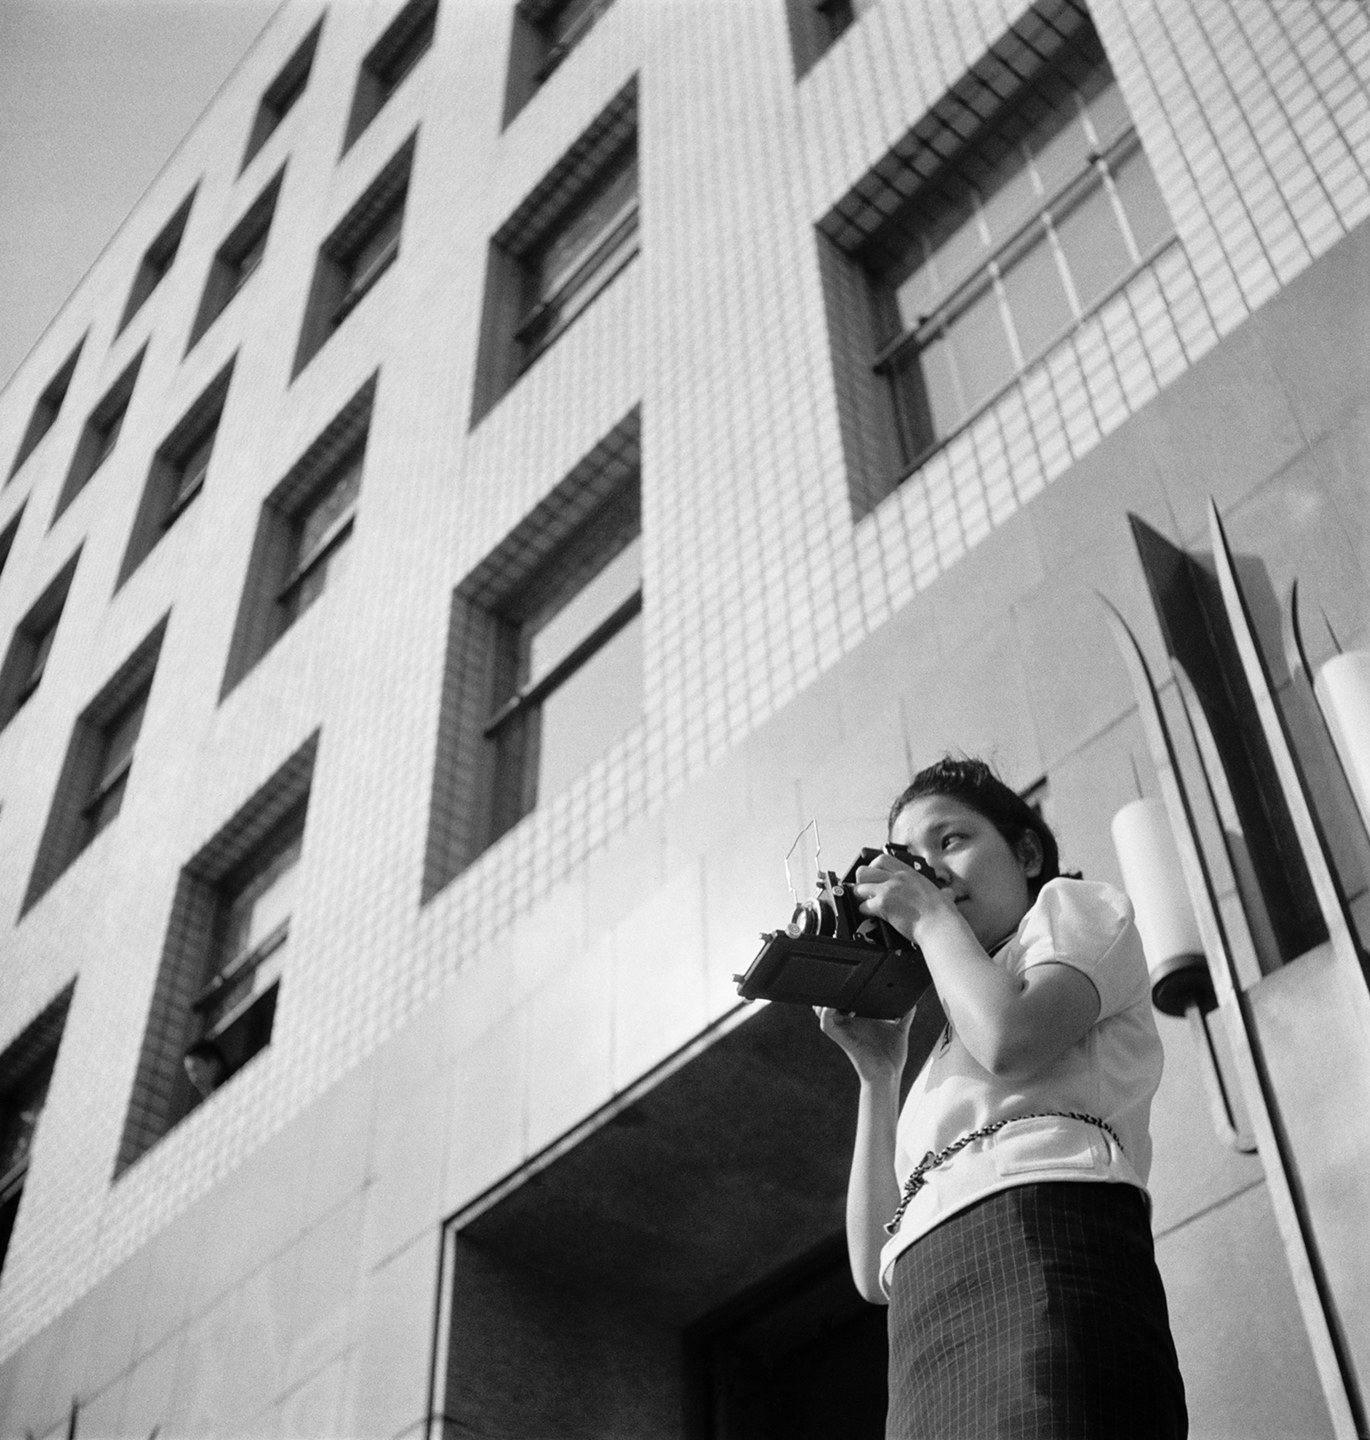 A woman aims a camera while she stands in front of a building